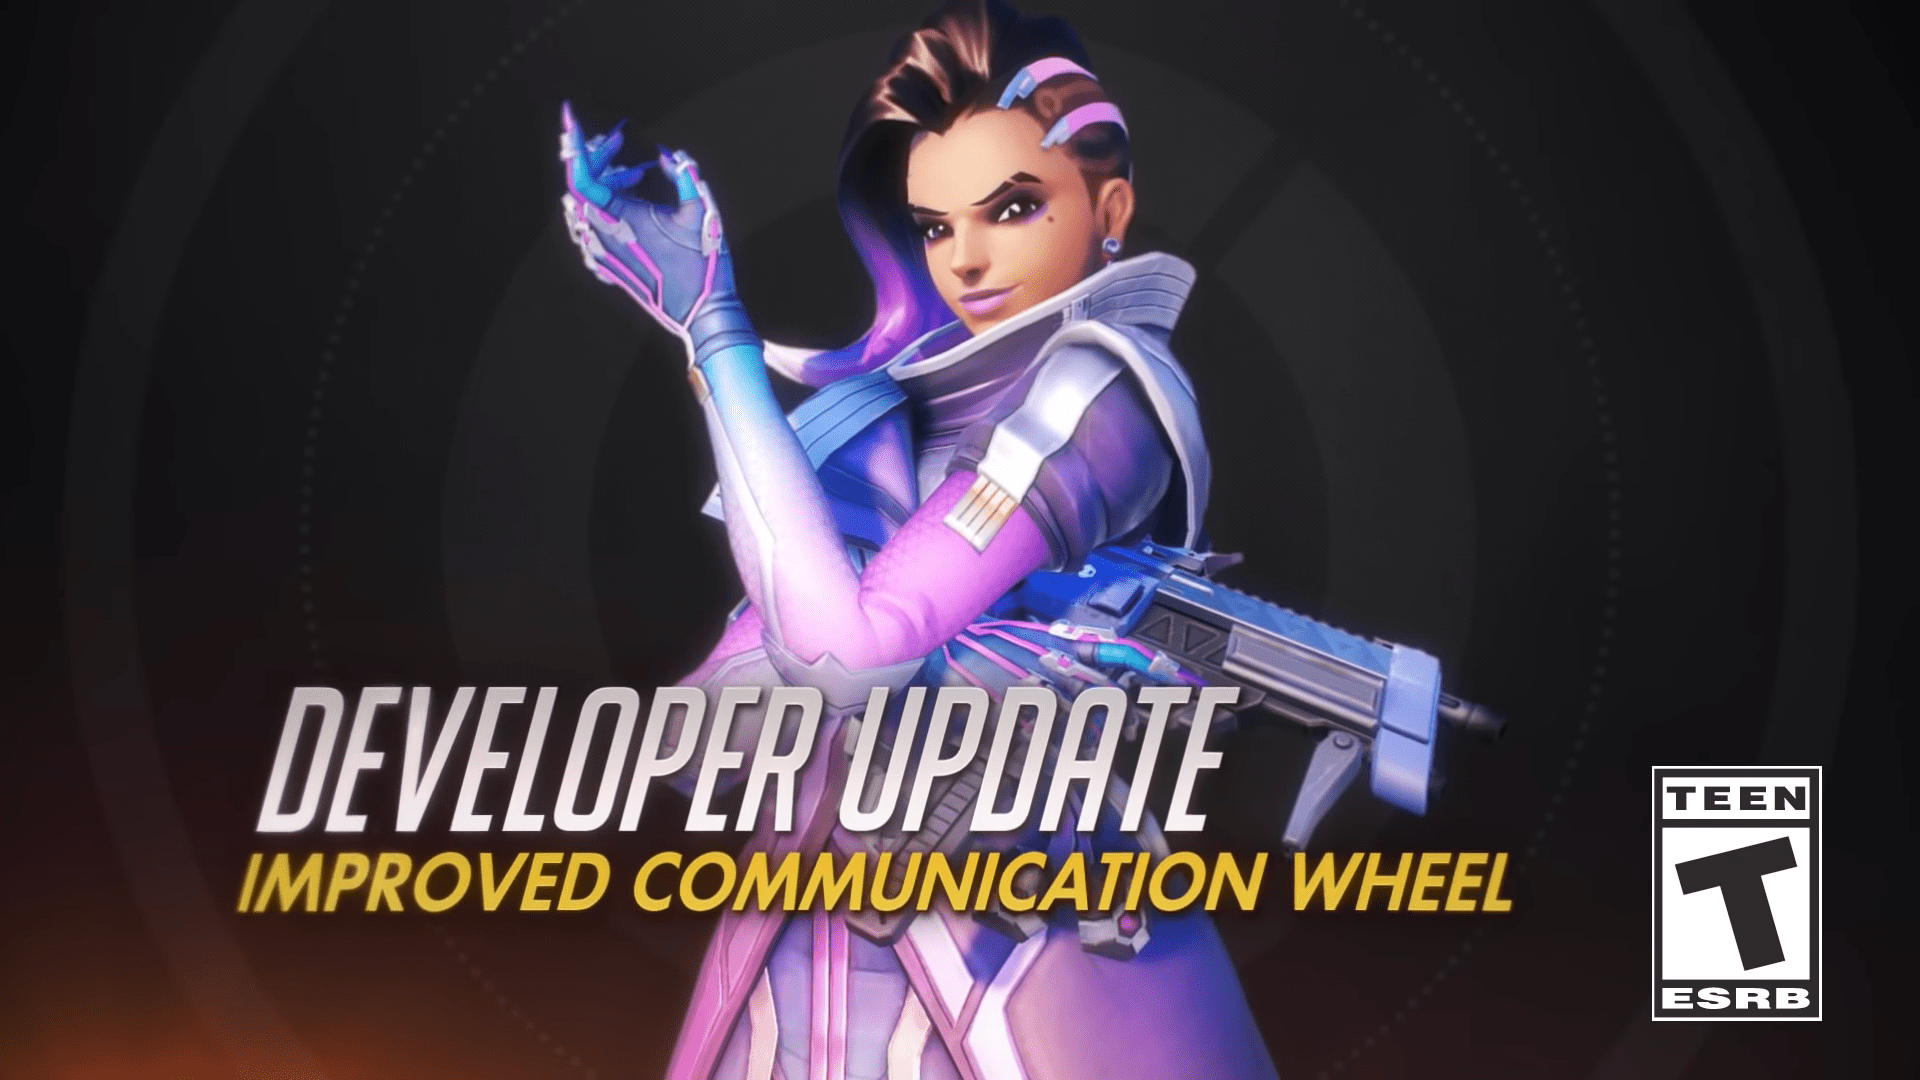 Overwatch: Jeff Kaplan Releases Developer Update From His Home During Quarantine- Improved Communication Wheel Incoming